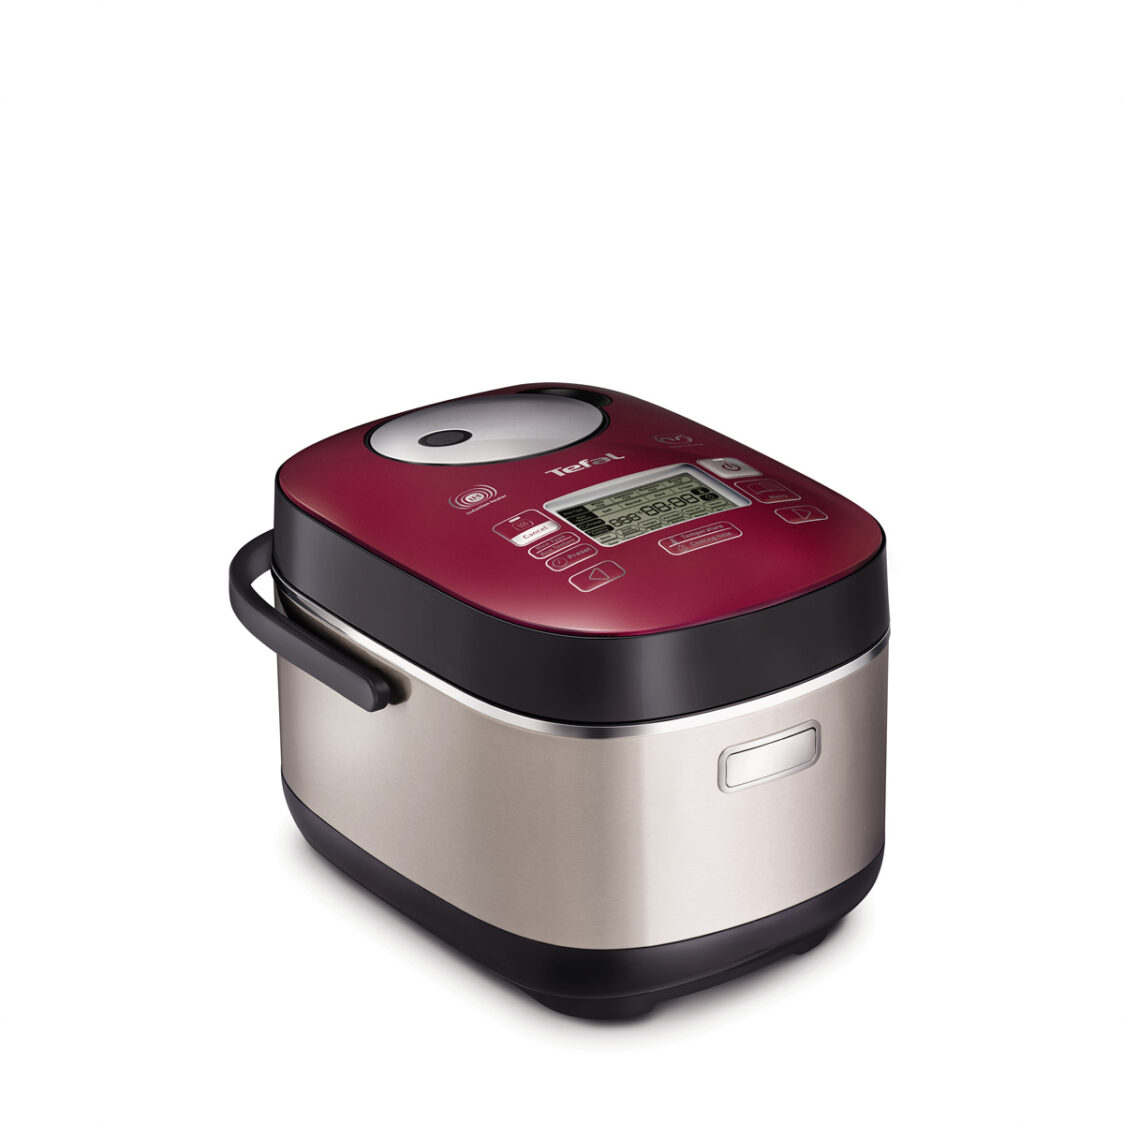 Tefal Rice Cooker Pro Induction 18L